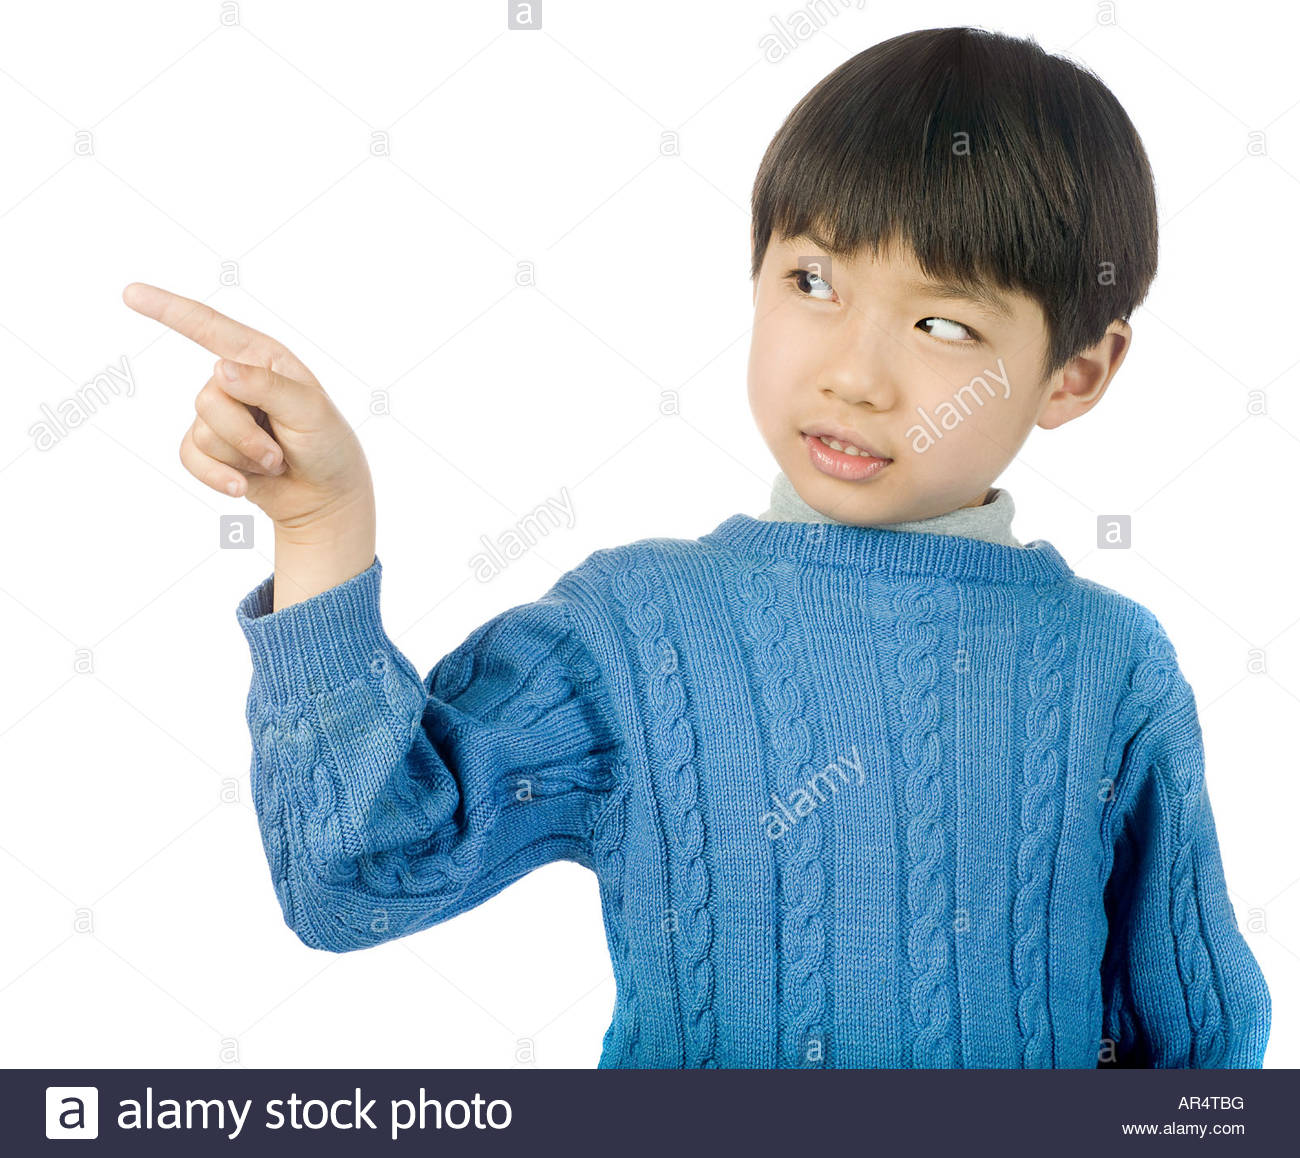 Boy pointing - Stock Image